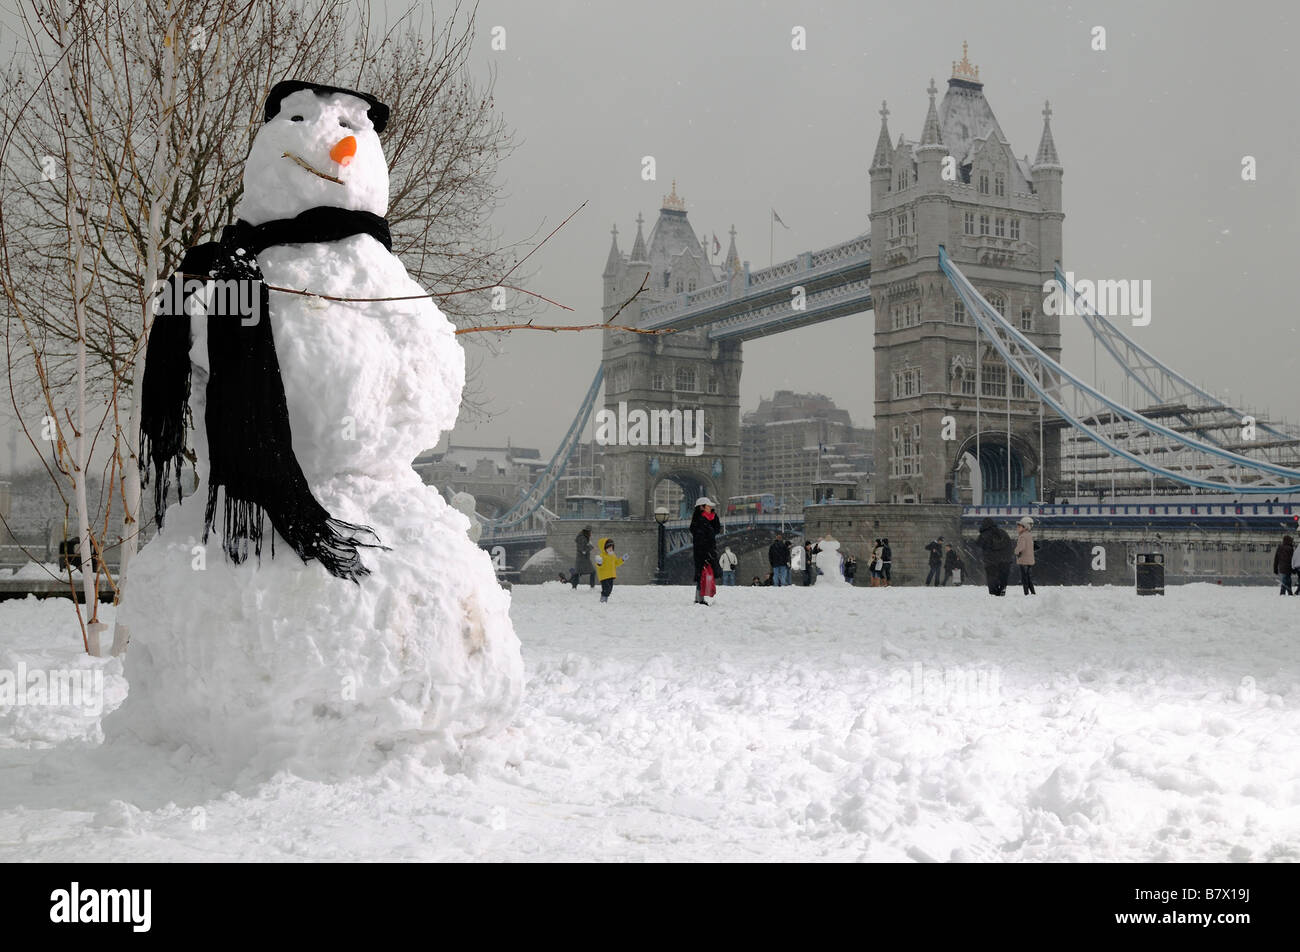 Heavy snowfall covers London - A snowman tourist visited Tower Bridge for this postcard. - Stock Image